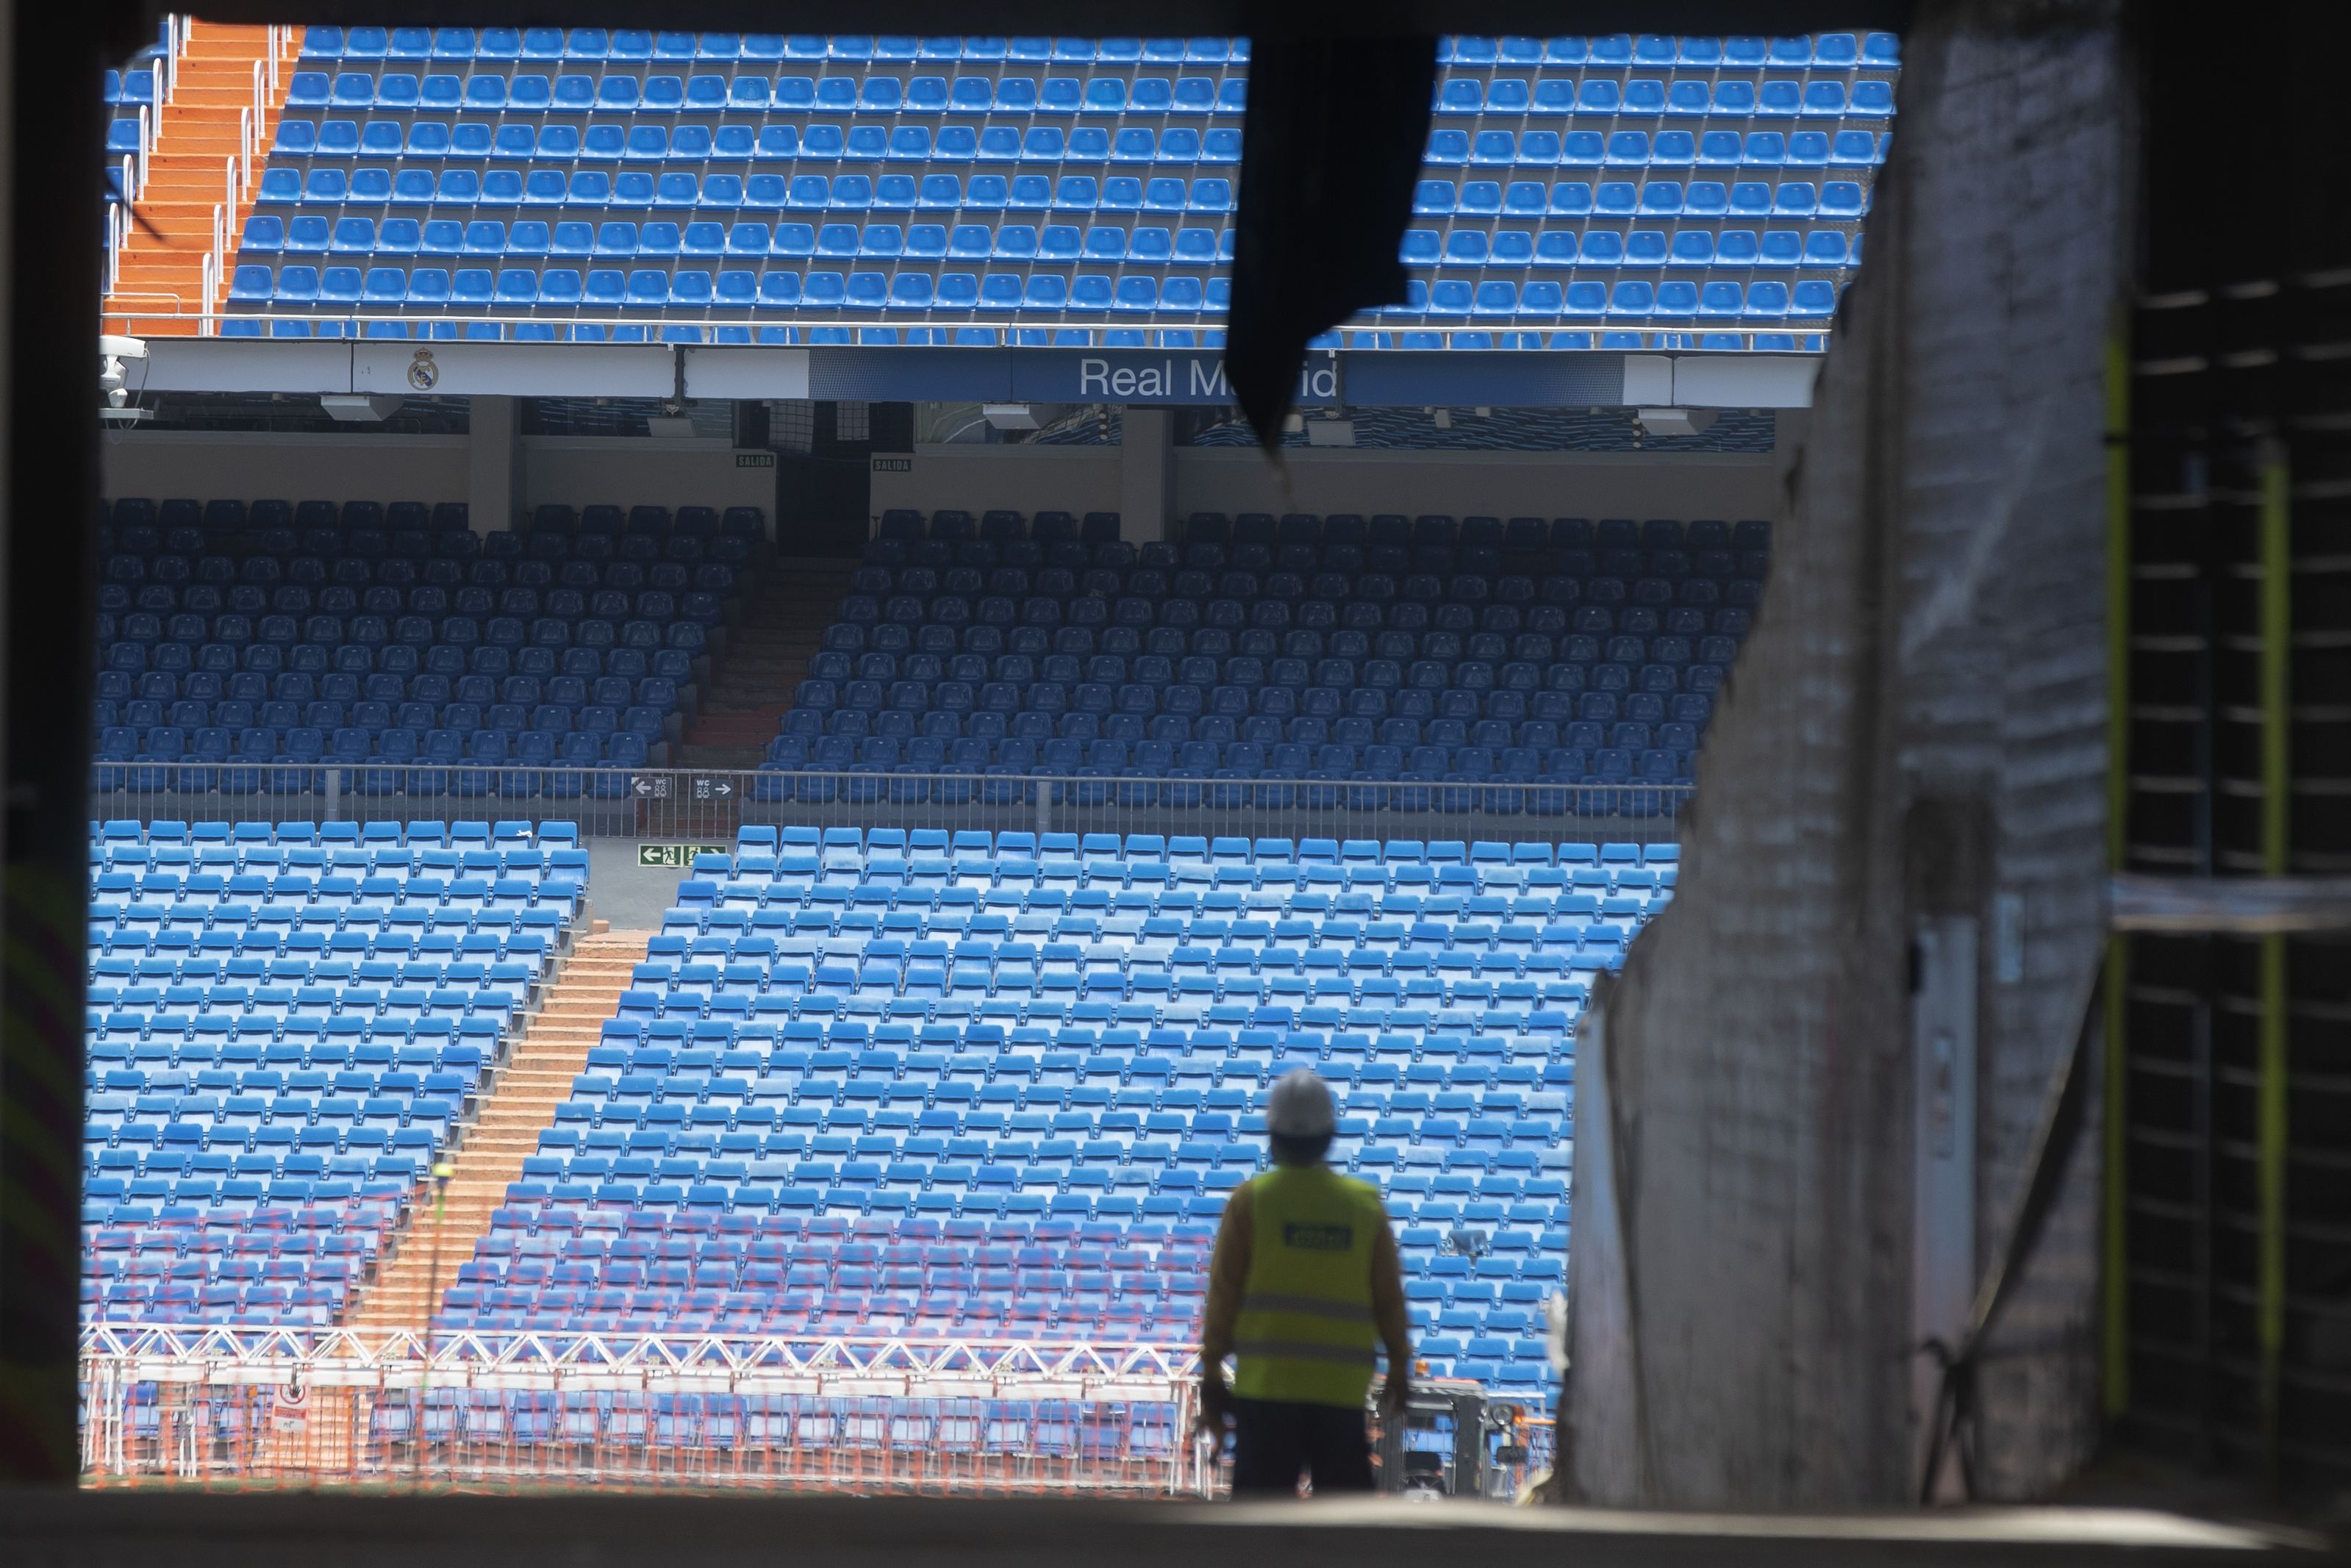 Spanish league not ruling out fans in stadiums this season